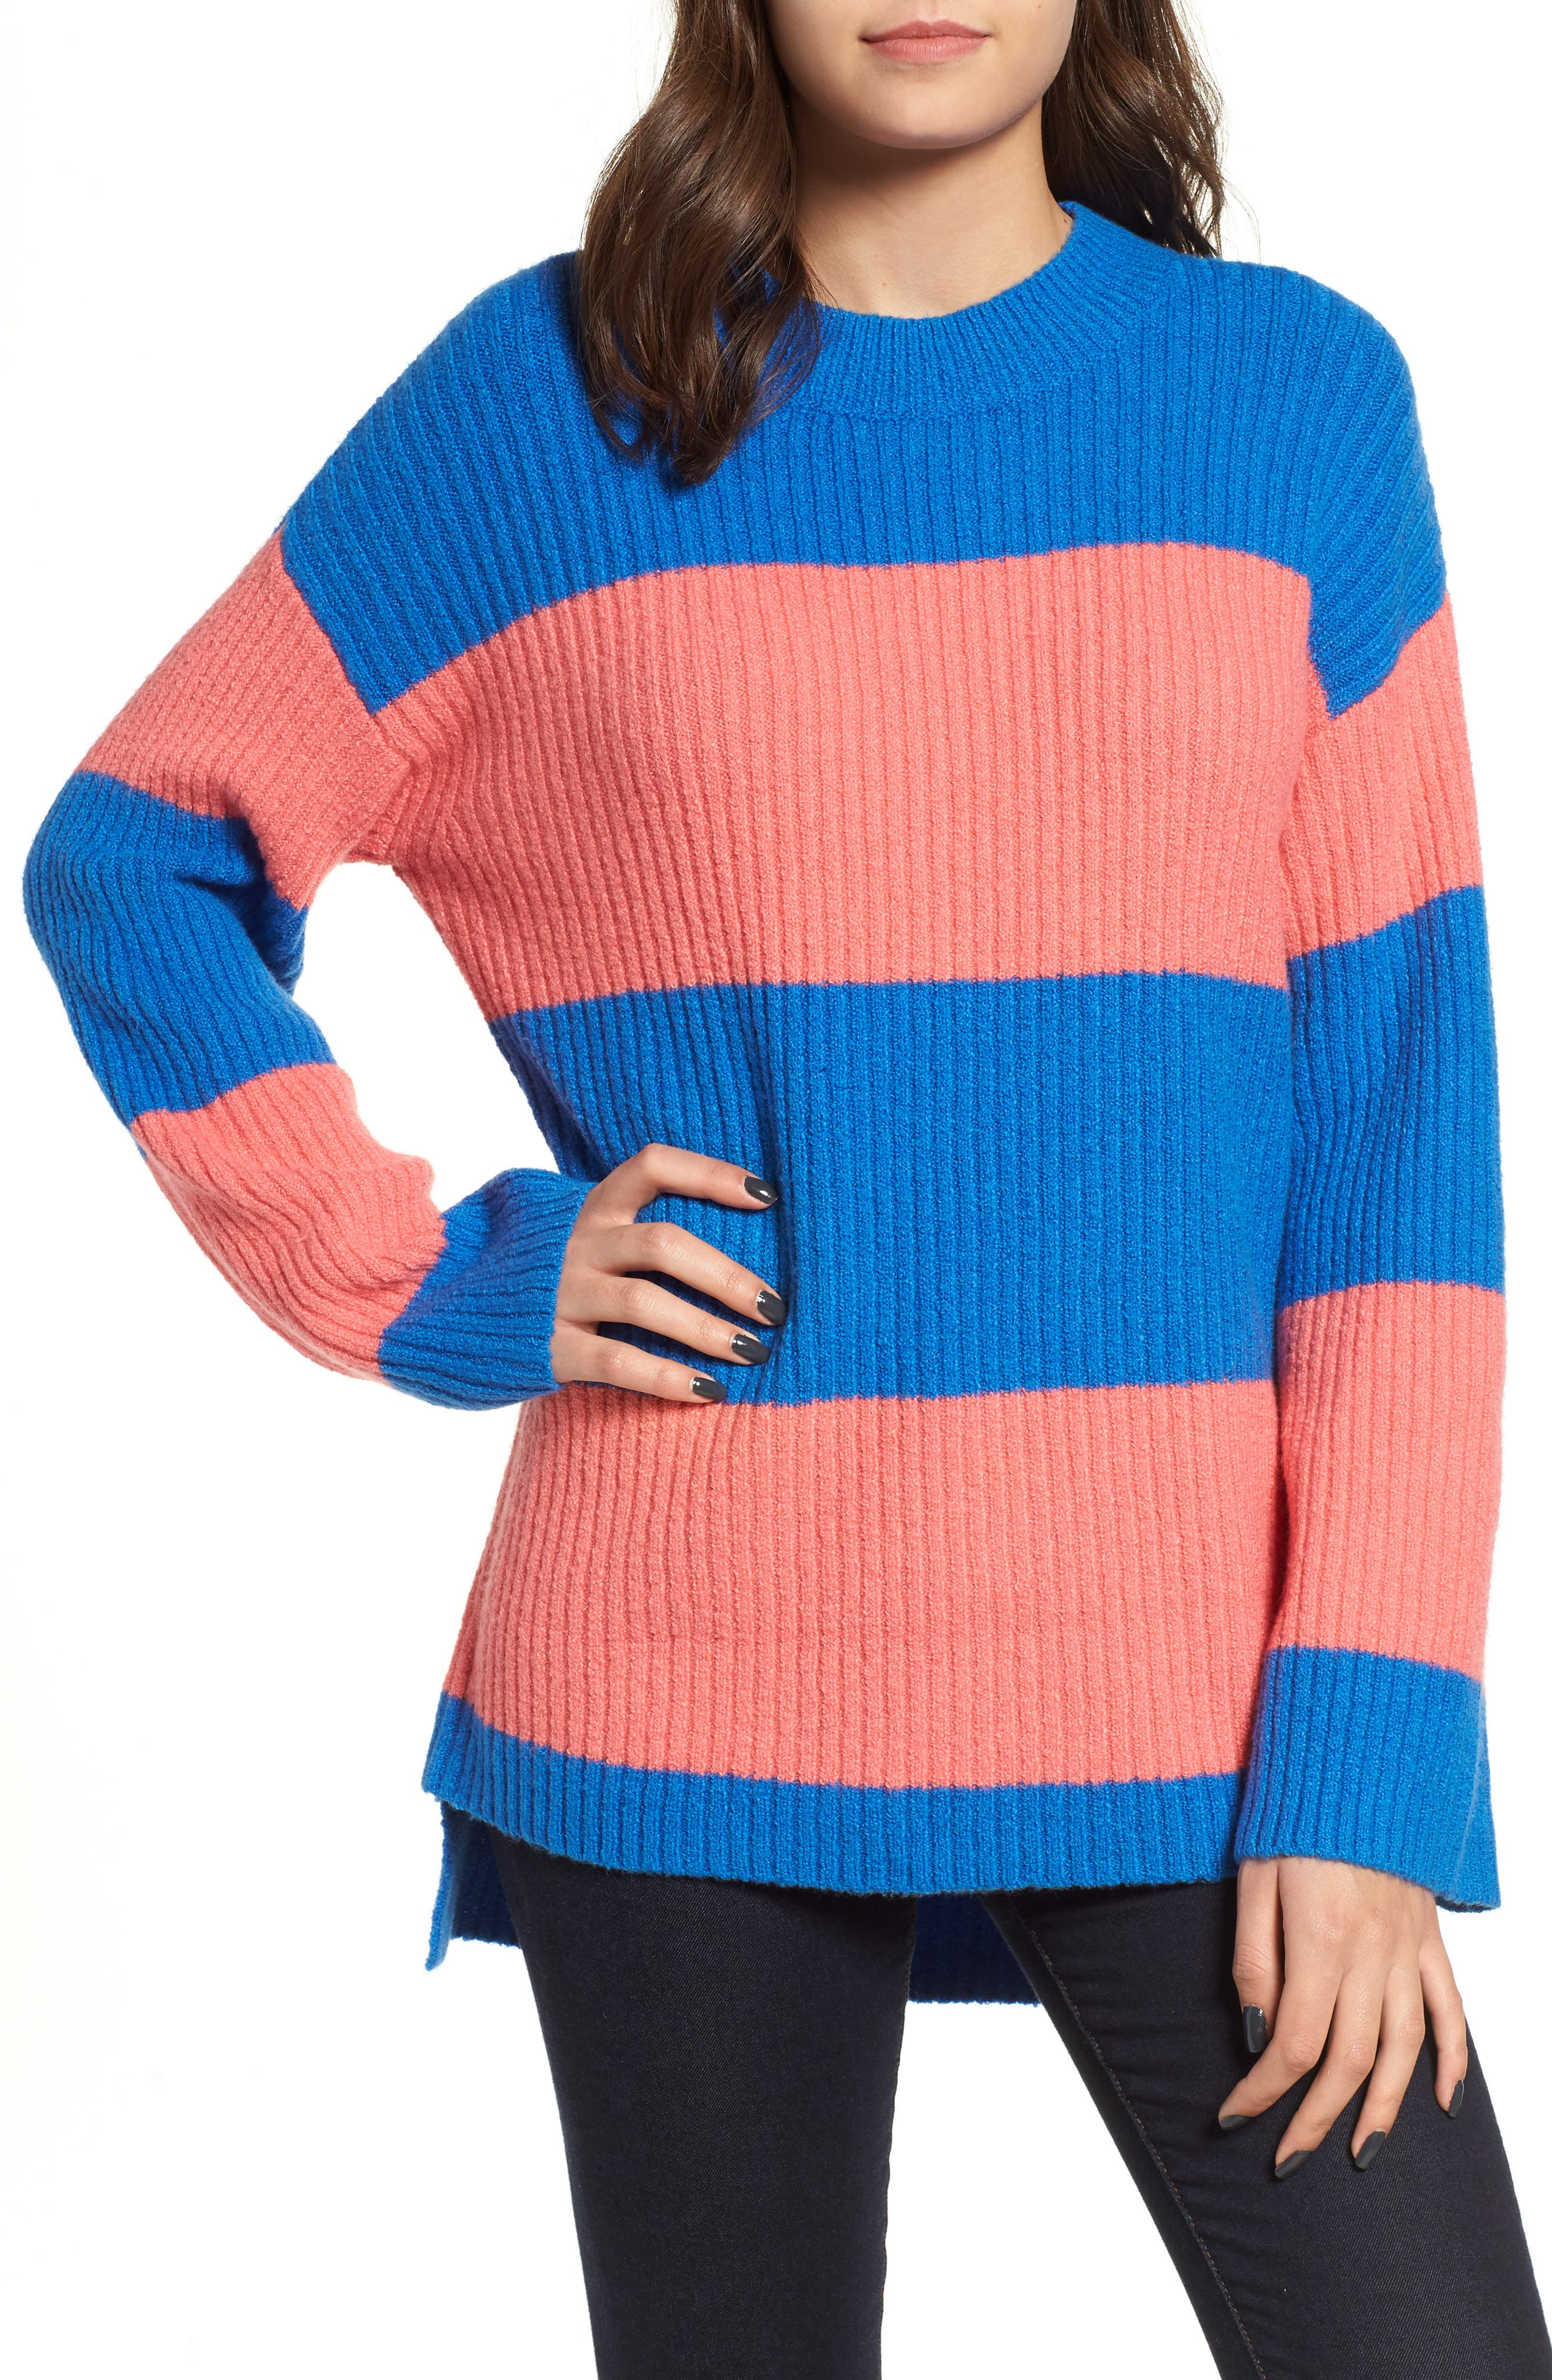 Rugby Stripe Sweater,                         Main,                         color, BLUE BOAT COURTNEY STRIPE